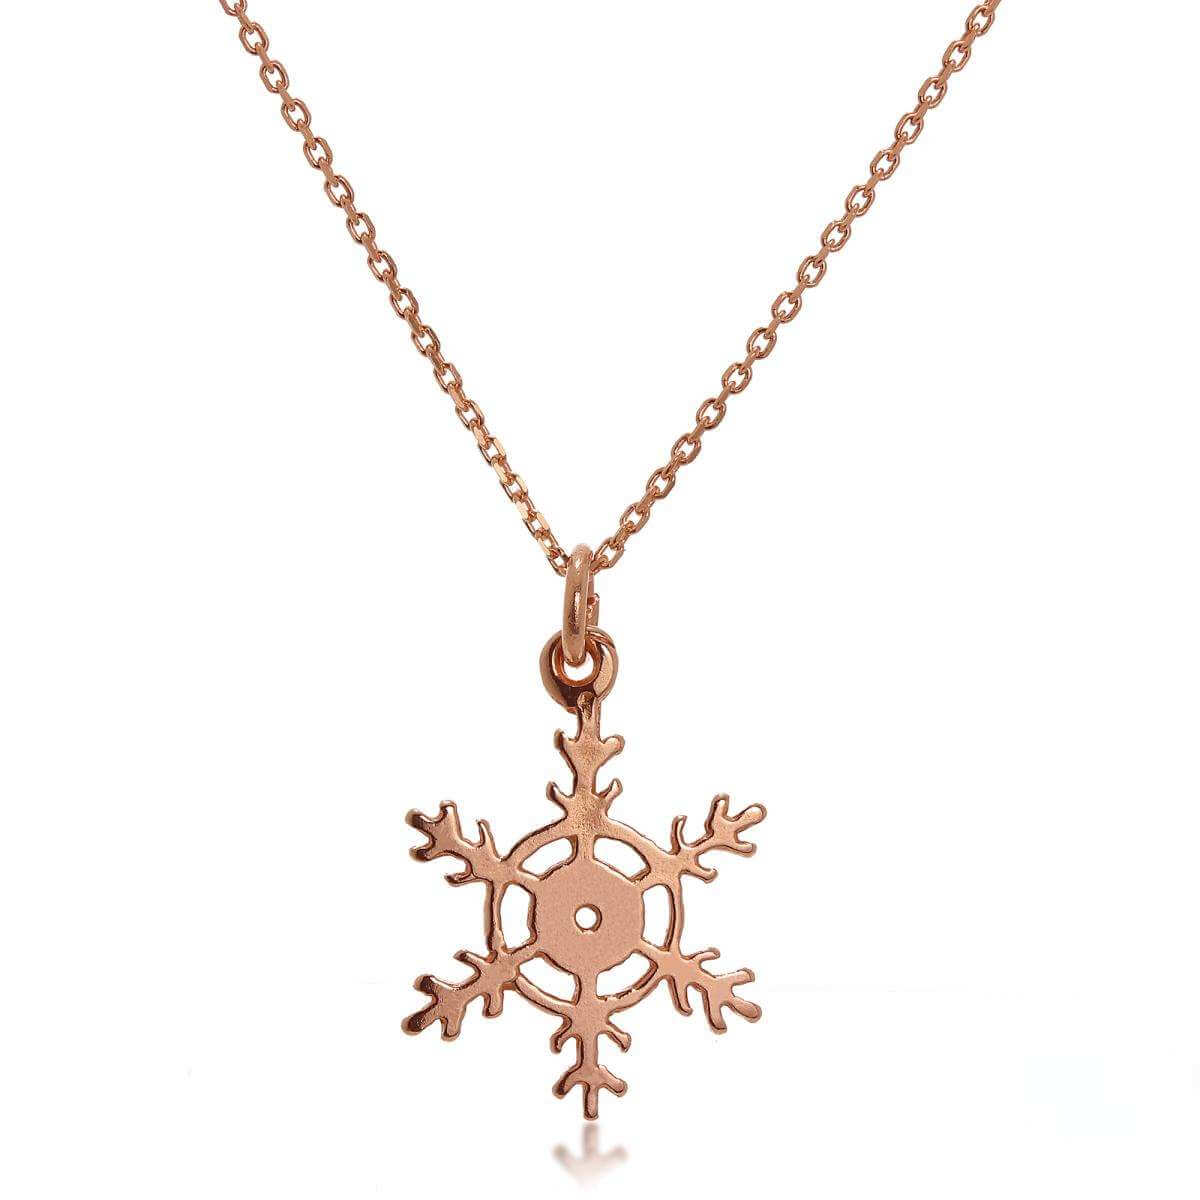 9ct Rose Gold Winter Snowflake Necklace on Chain 16 - 20 Inches